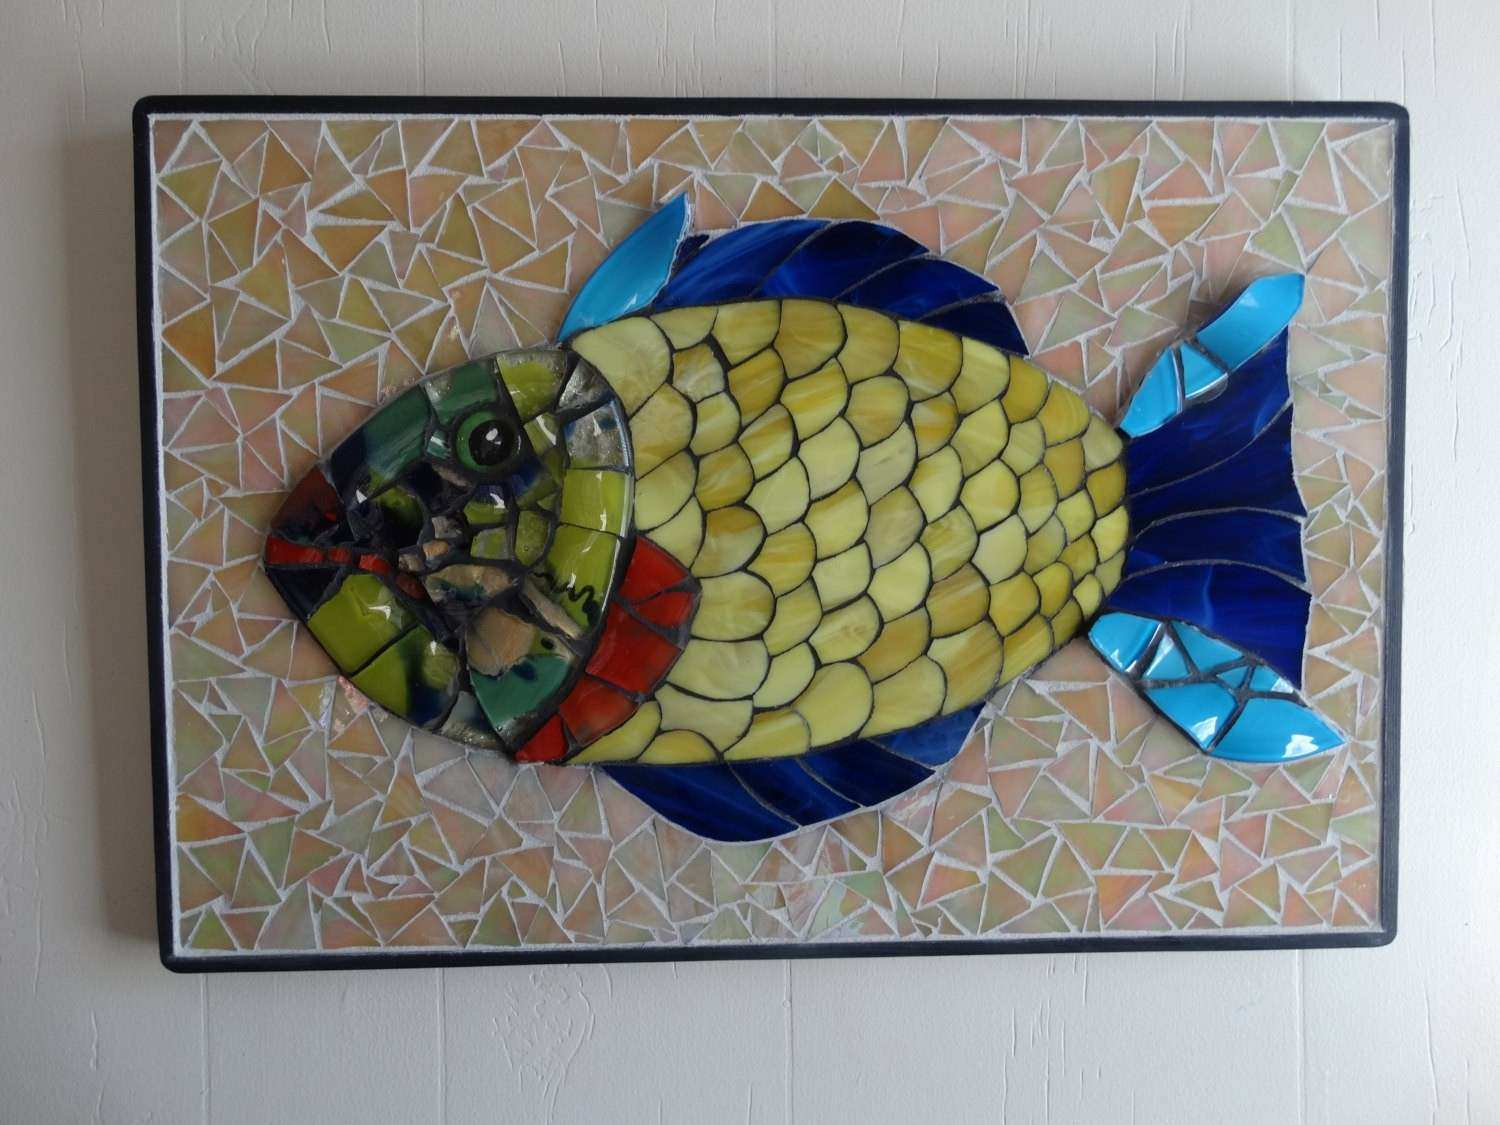 Glass Wall Art and Decor Inspirational Mosaic Fish Colorful Fused and Stained Glass Wall Art original